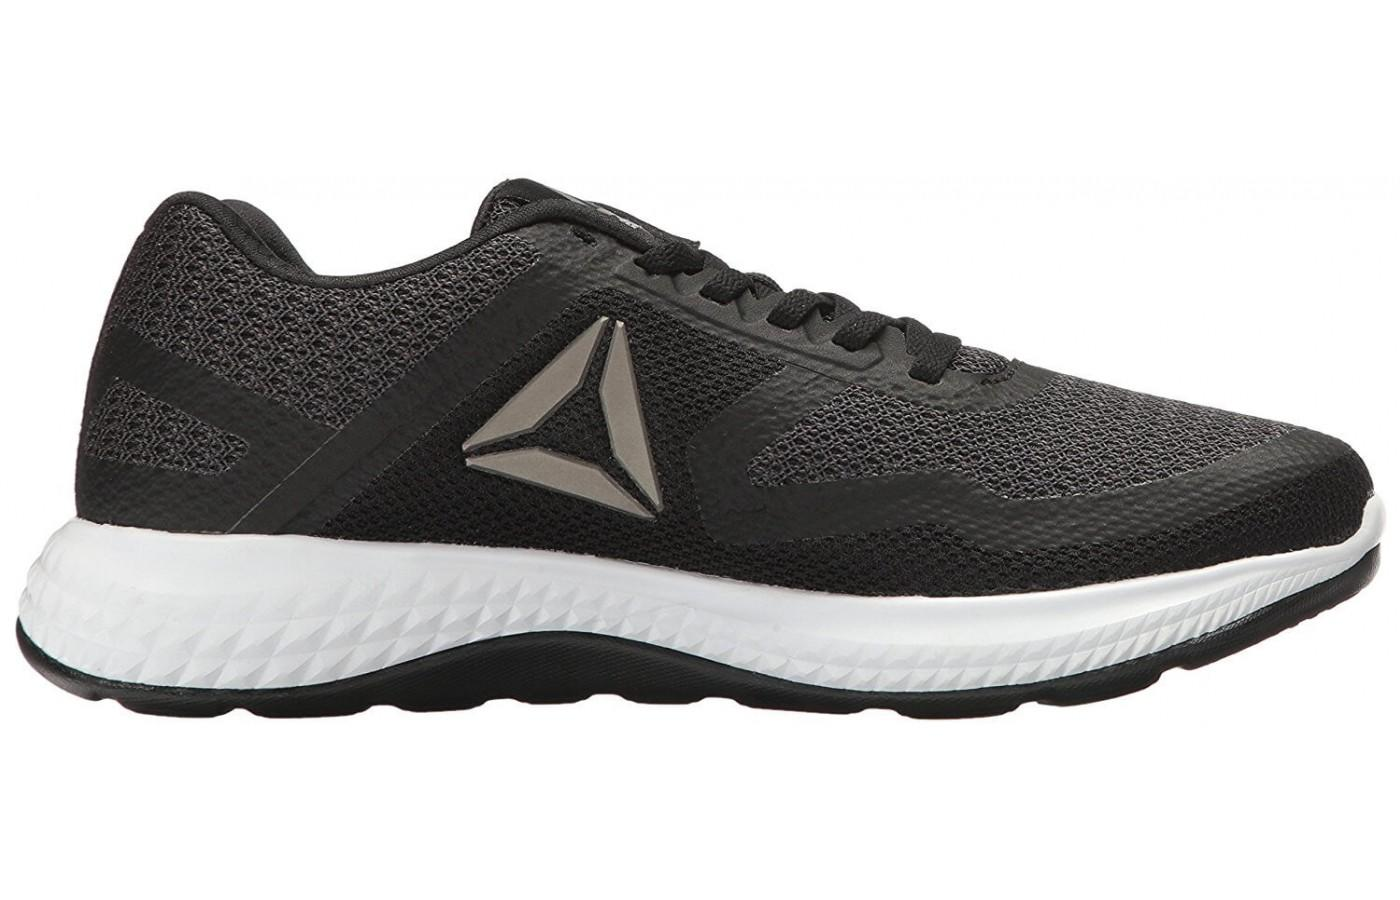 The Reebok Astroride 2D has a seamless FuseFrame and breathable mesh upper